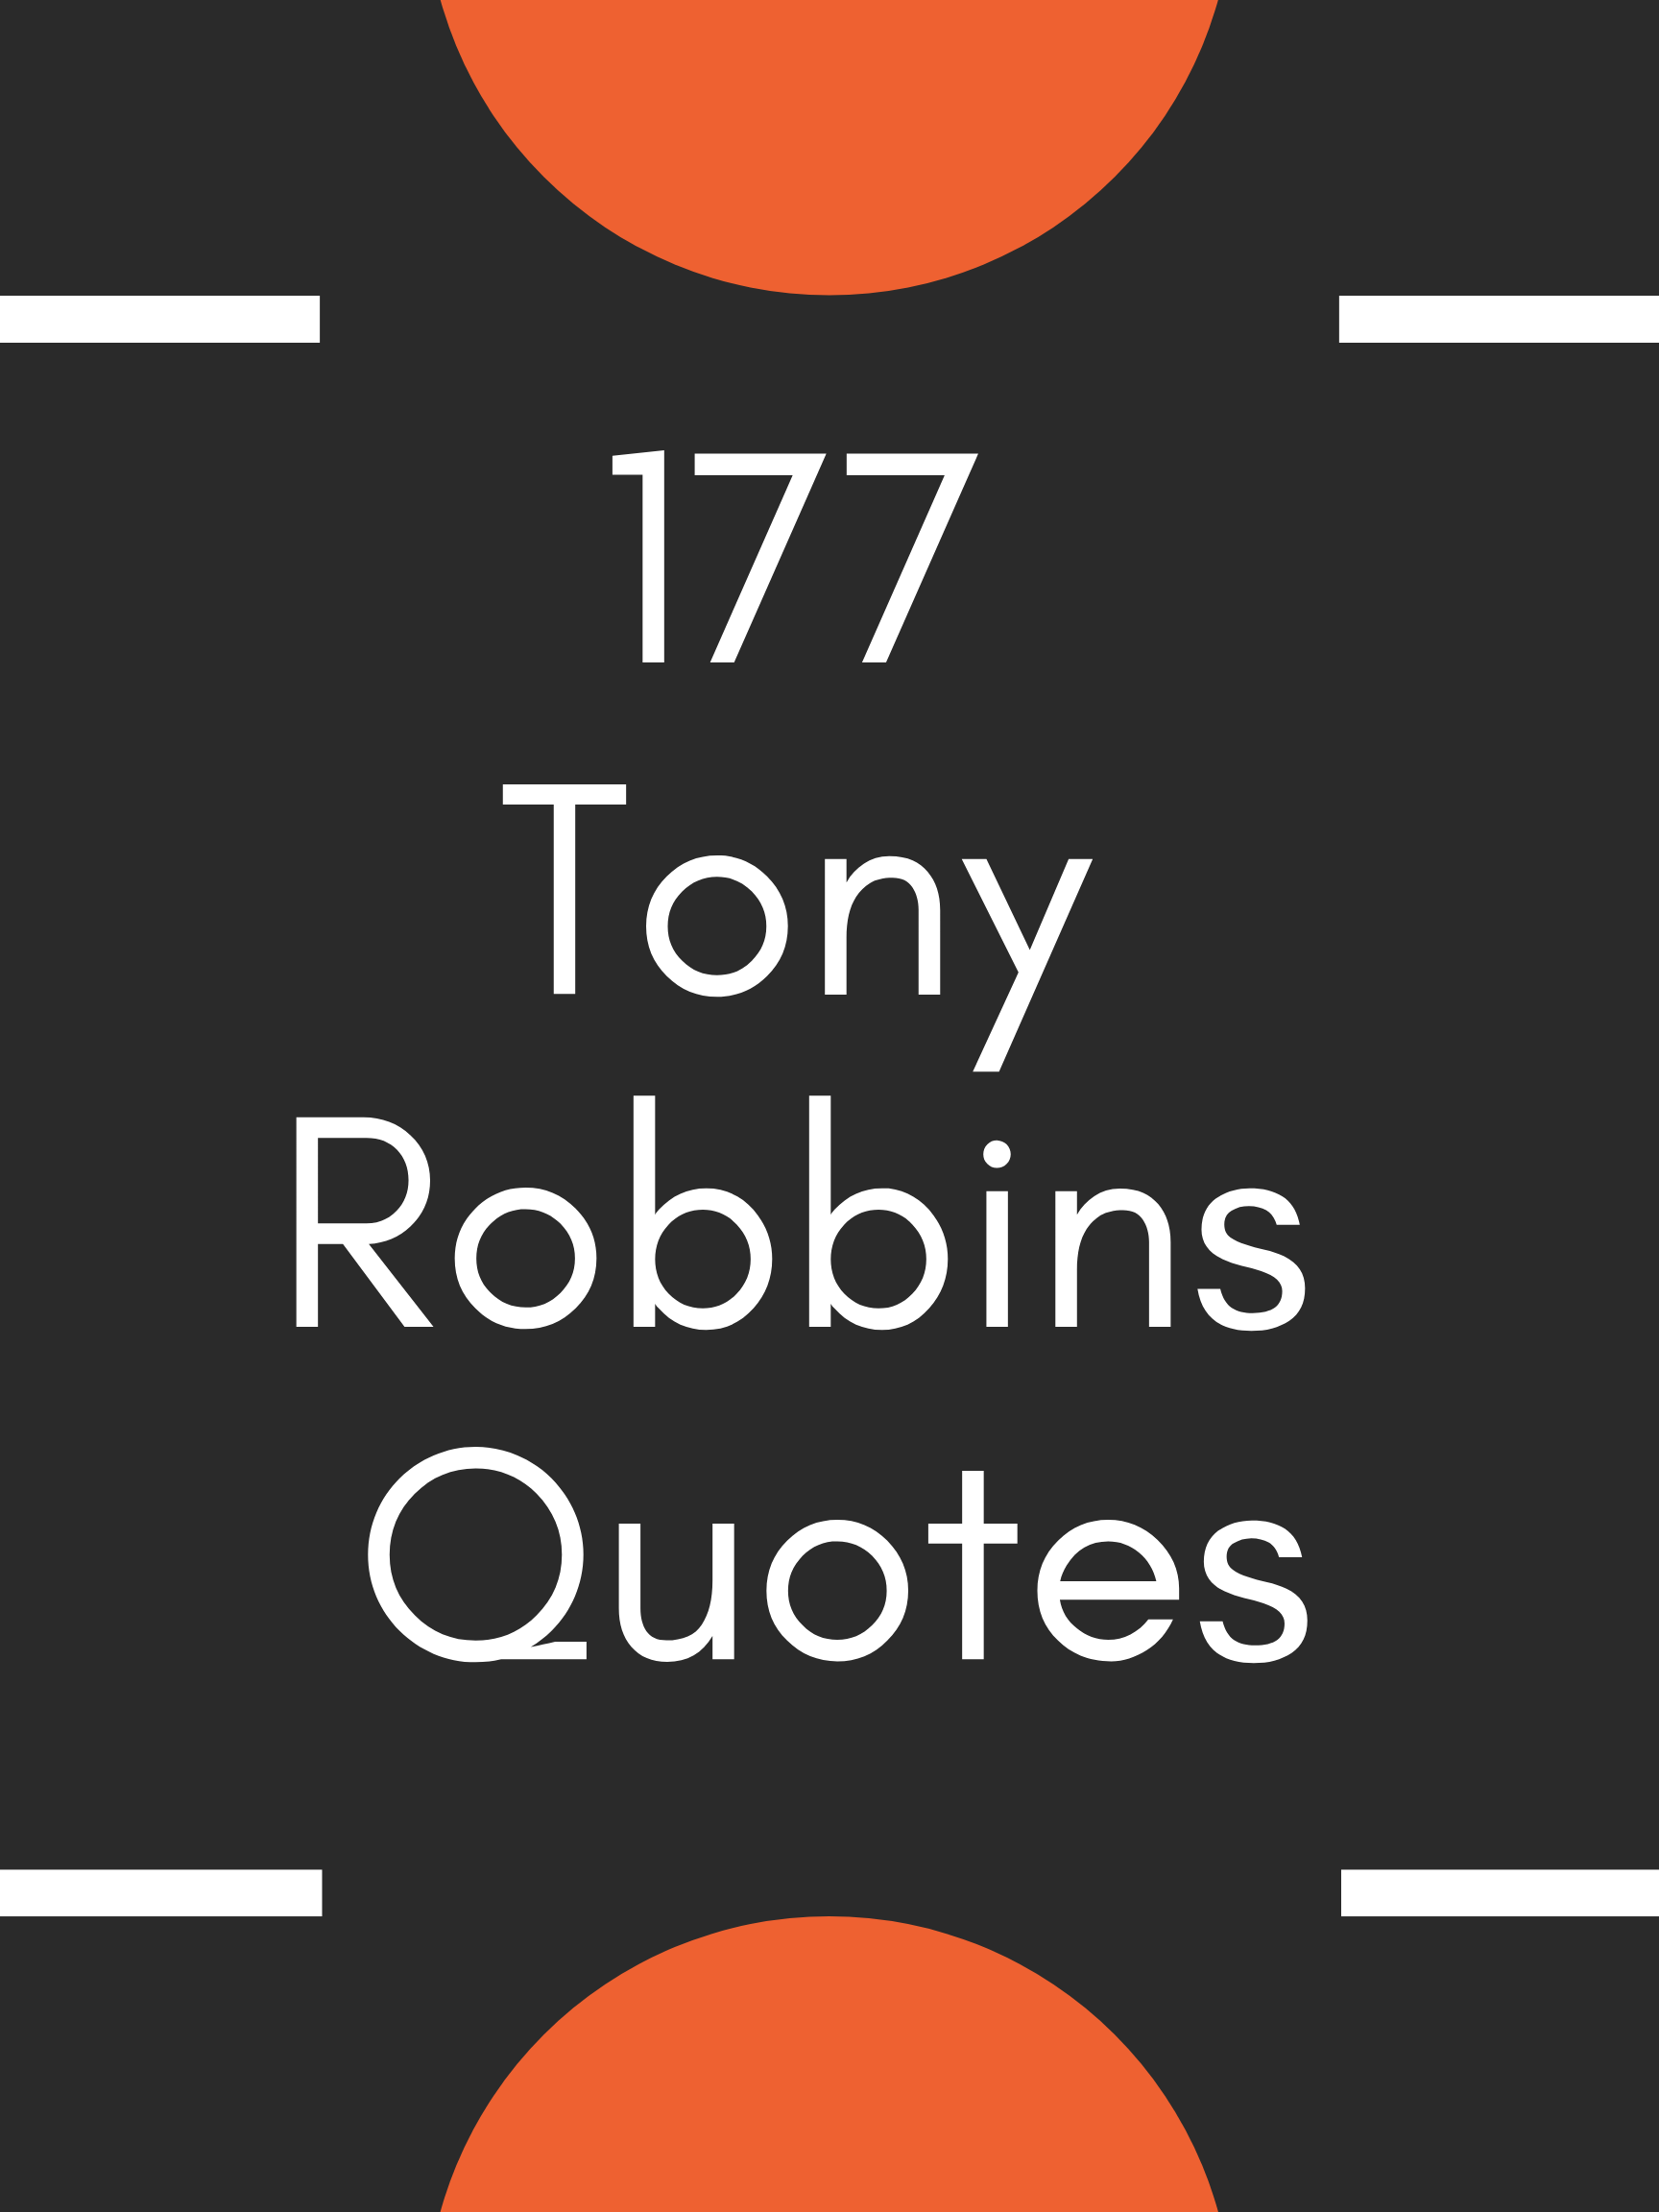 177 Tony Robbins Quotes The Ultimate List